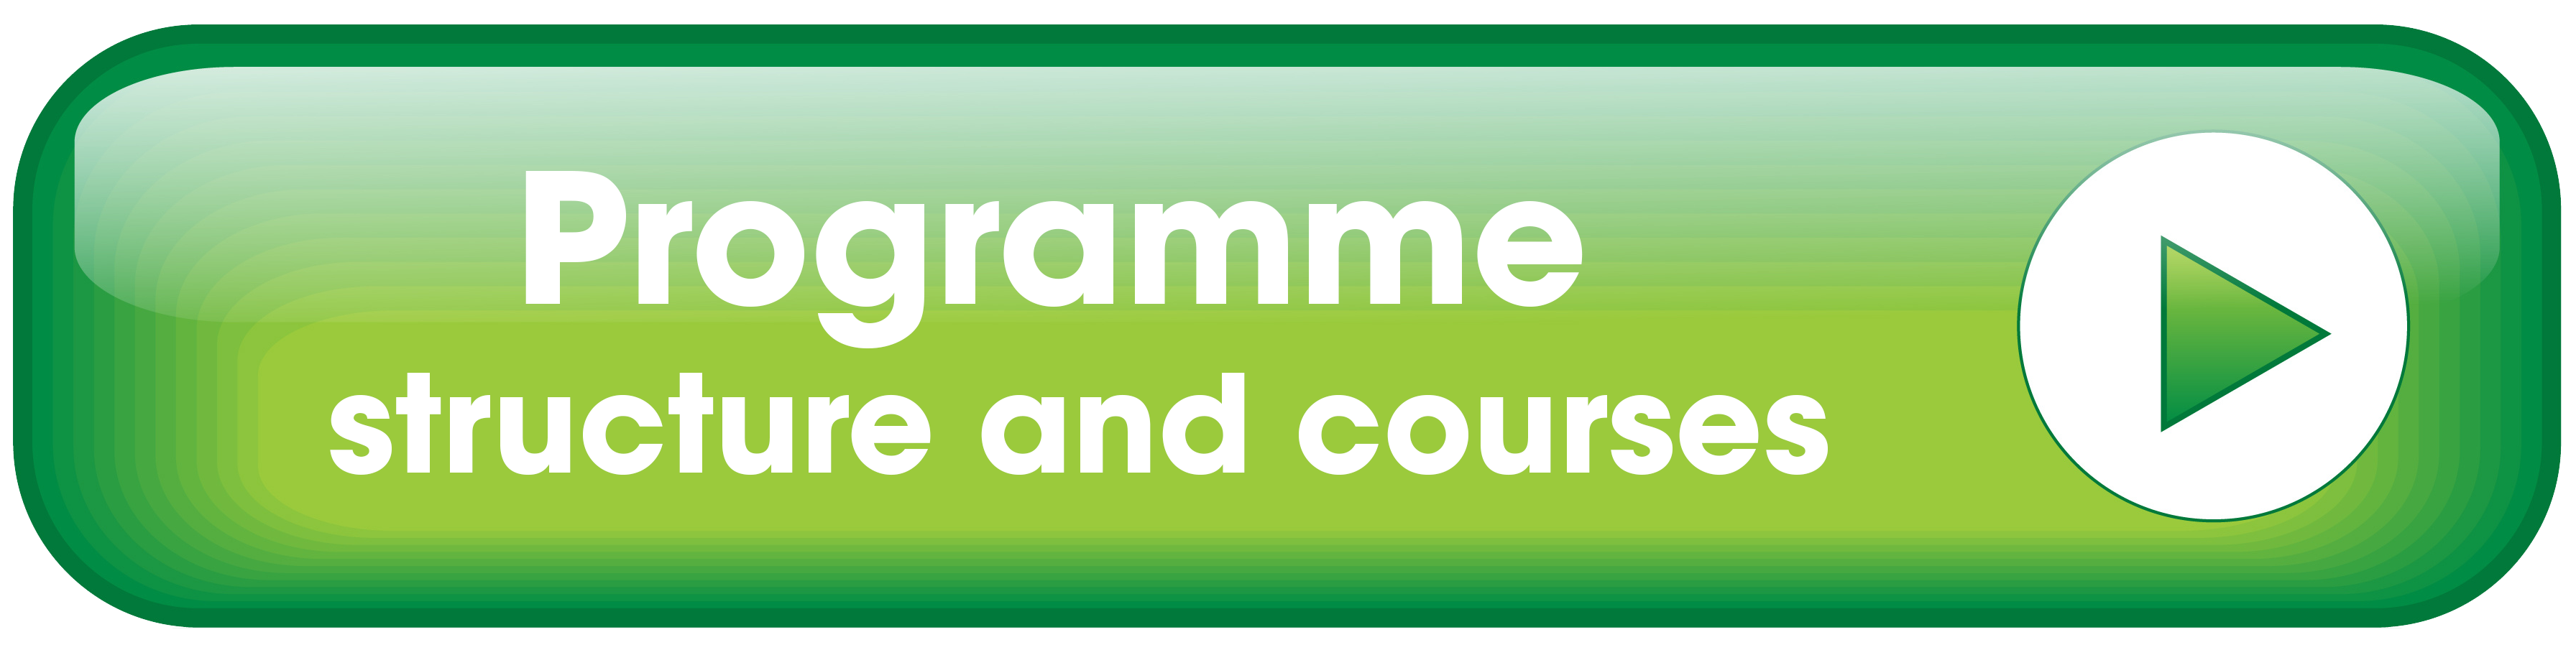 Programme structure and courses